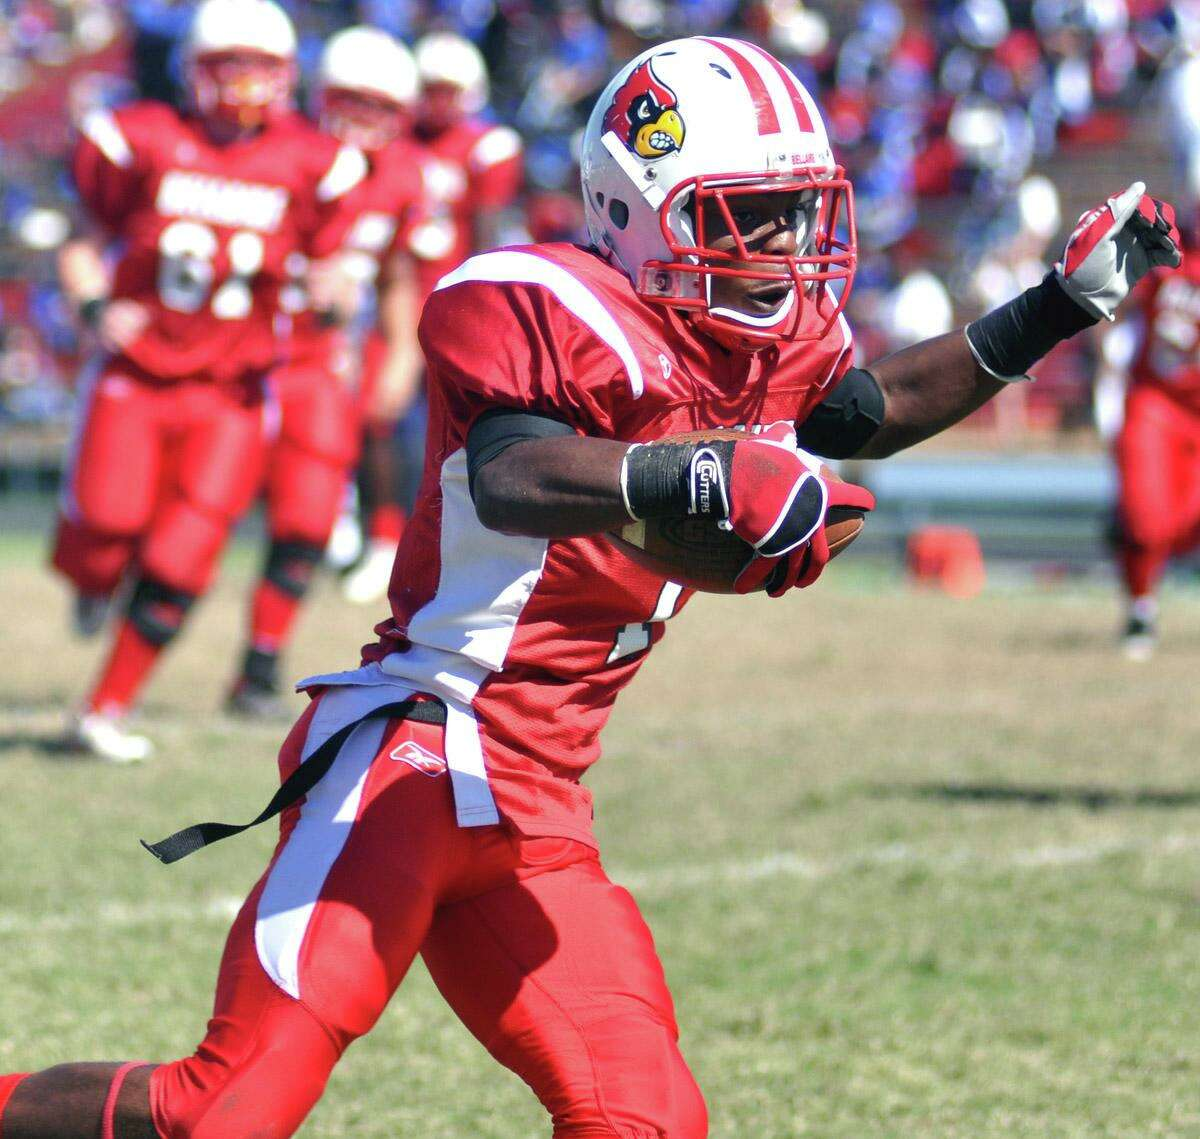 Bellaire wide receiver Derwyn Lauderdale gains extra yardage after catching a pass in the district game against Lamar on Oct. 31, 2009. Lauderdale, who became a coach at Travis High School, was fatally shot Oct. 11, 2020 at a Rosenberg sports complex.